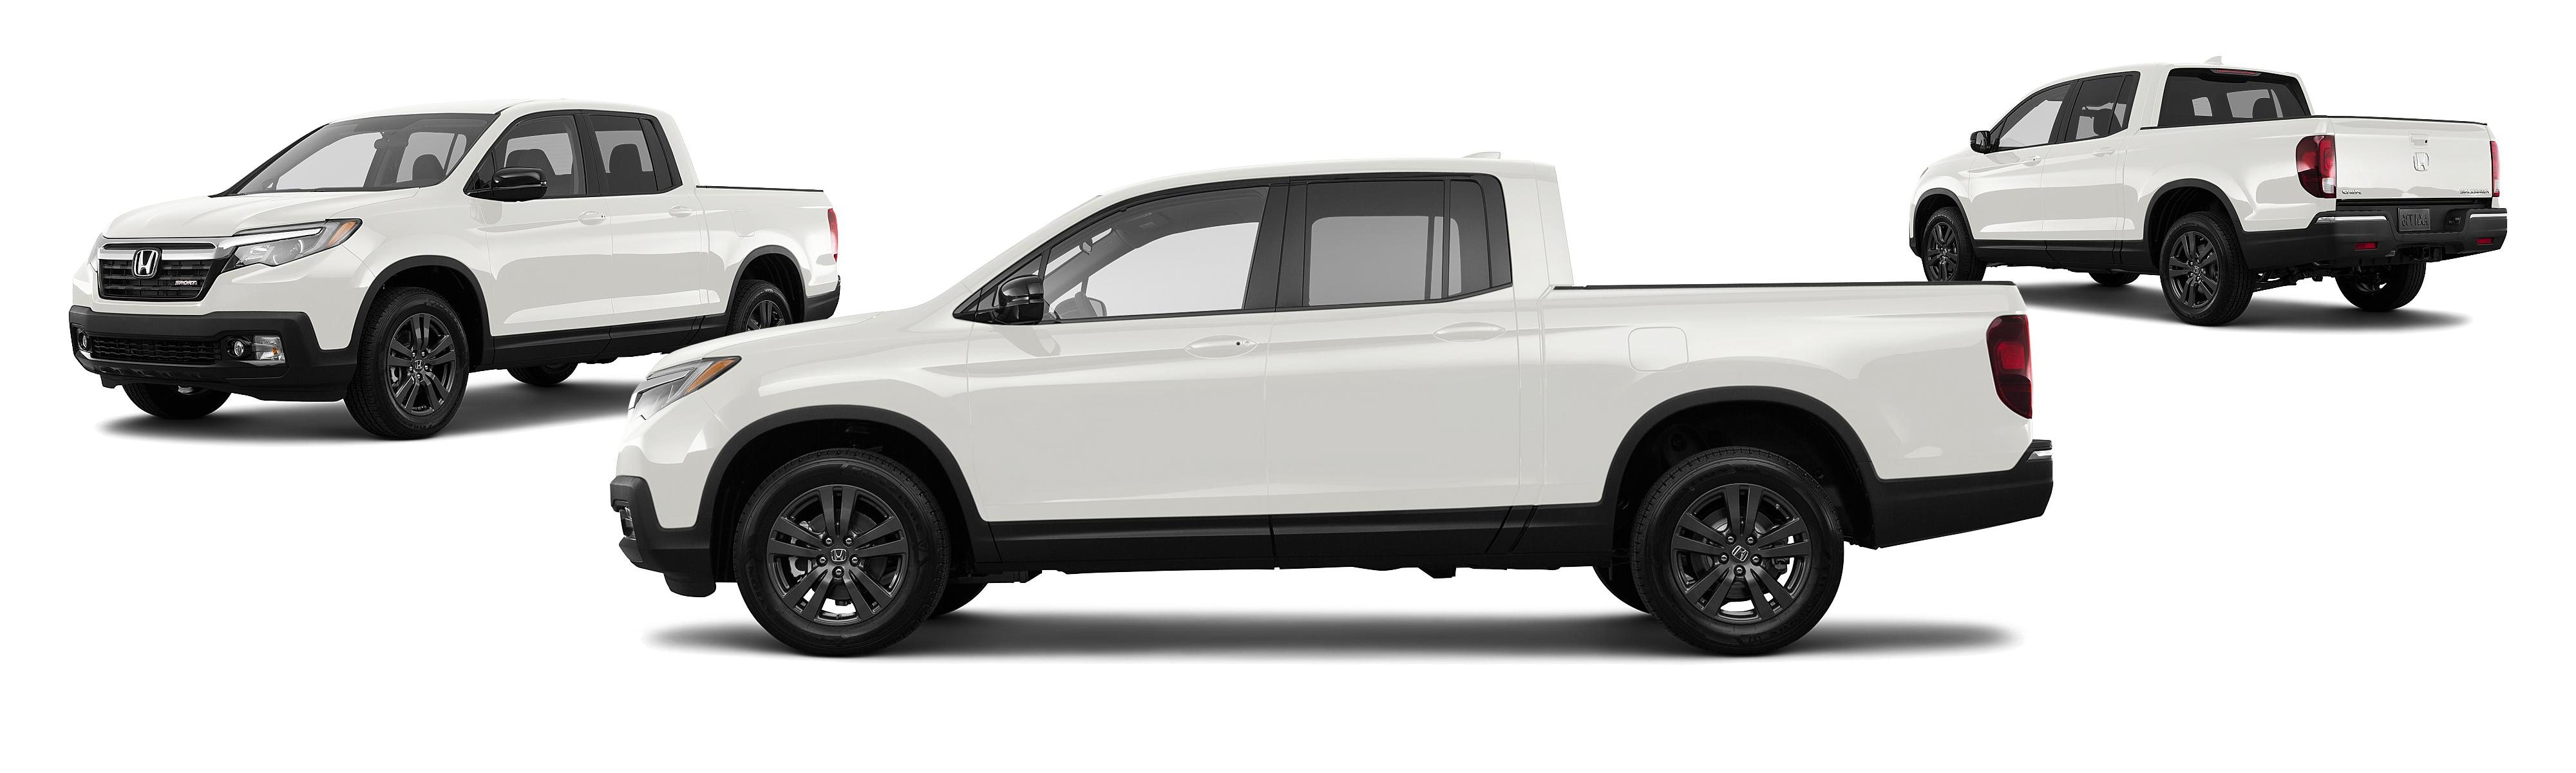 2018-honda-ridgeline-rt-4dr-crew-cab-5-3-ft-sb-white-orchid-pearl-composite-large Interesting Info About Honda Ridgeline 2008